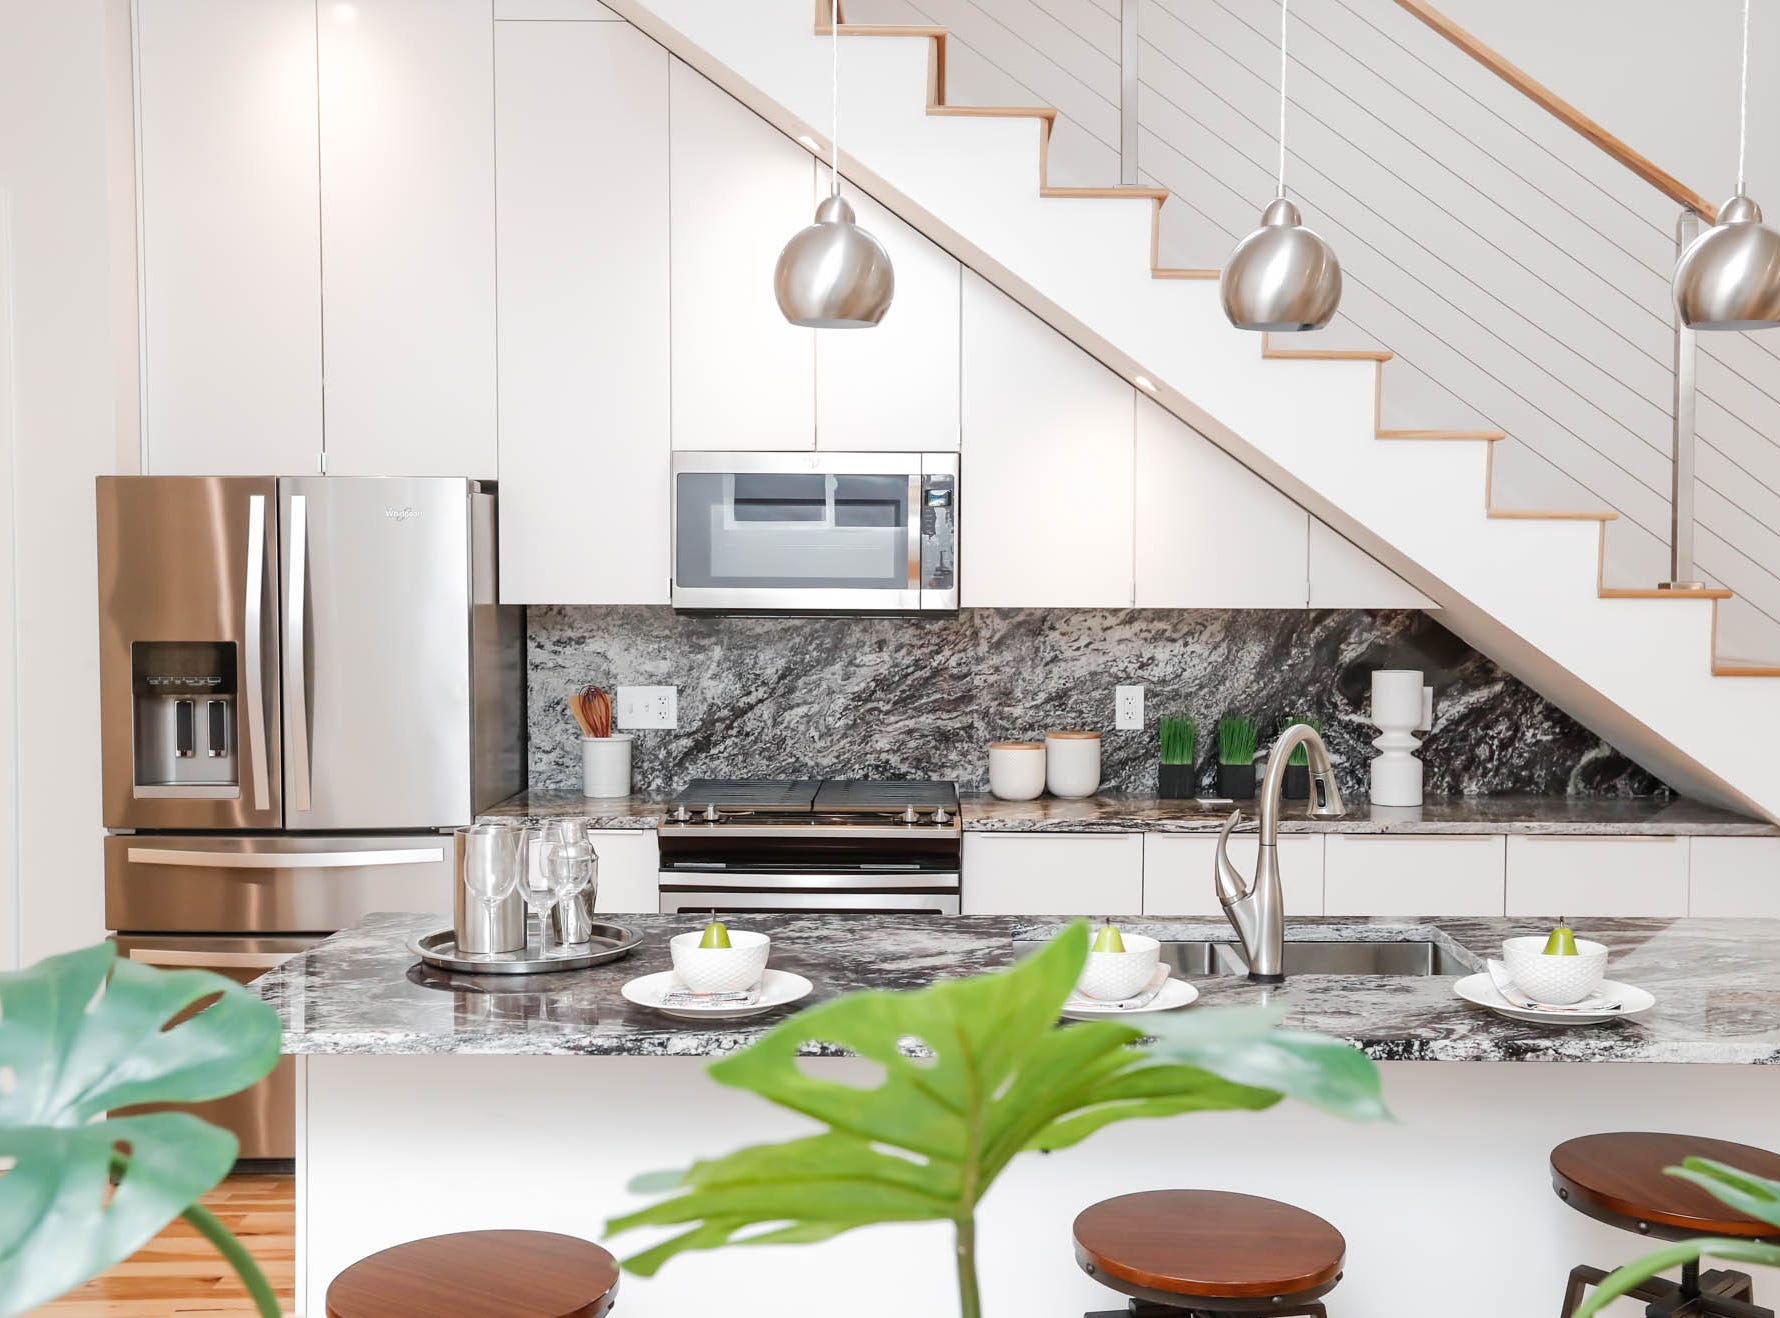 A newly built modern architectural home up for sale at 1134 Woodlawn Ave., Indianapolis, Ind., 46203, in the heart of the historic Fountain Square neighborhood, features an open plan concept with white cabinets and stainless steel appliances on Wednesday, January 23, 2019. The three-story home, which features 2,030-square-feet and an open space concept tile and hardwood floors are priced at $479,900.